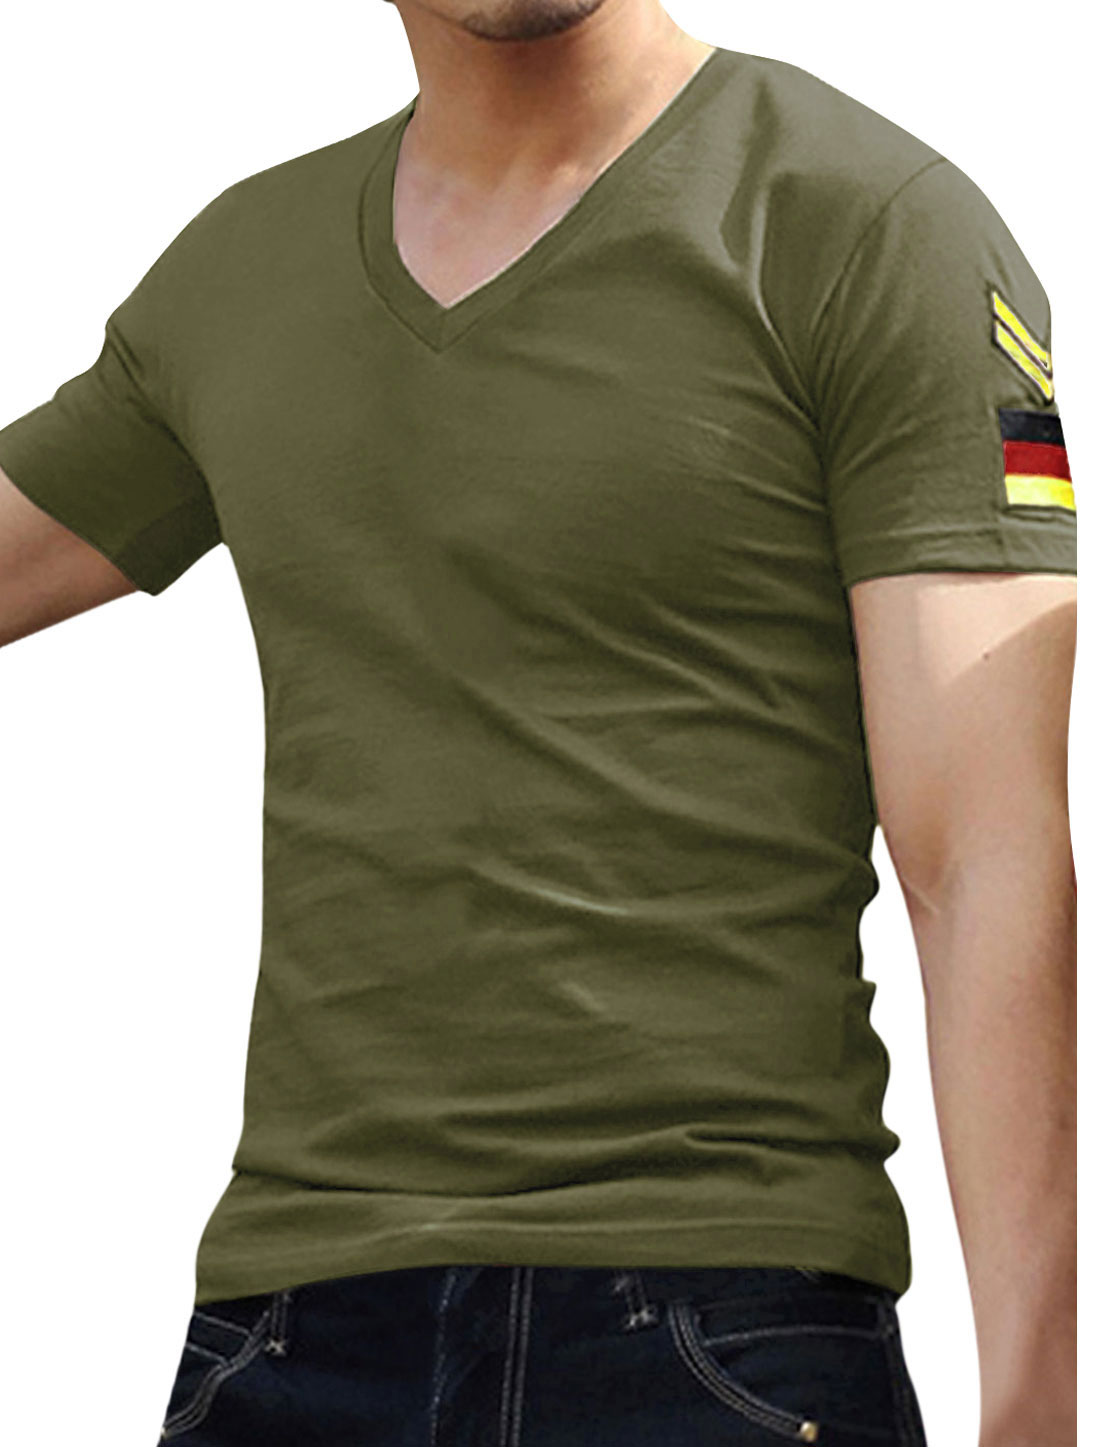 Mens Olive Green V-neck Stretchy Embellished Detail Top Shirt L